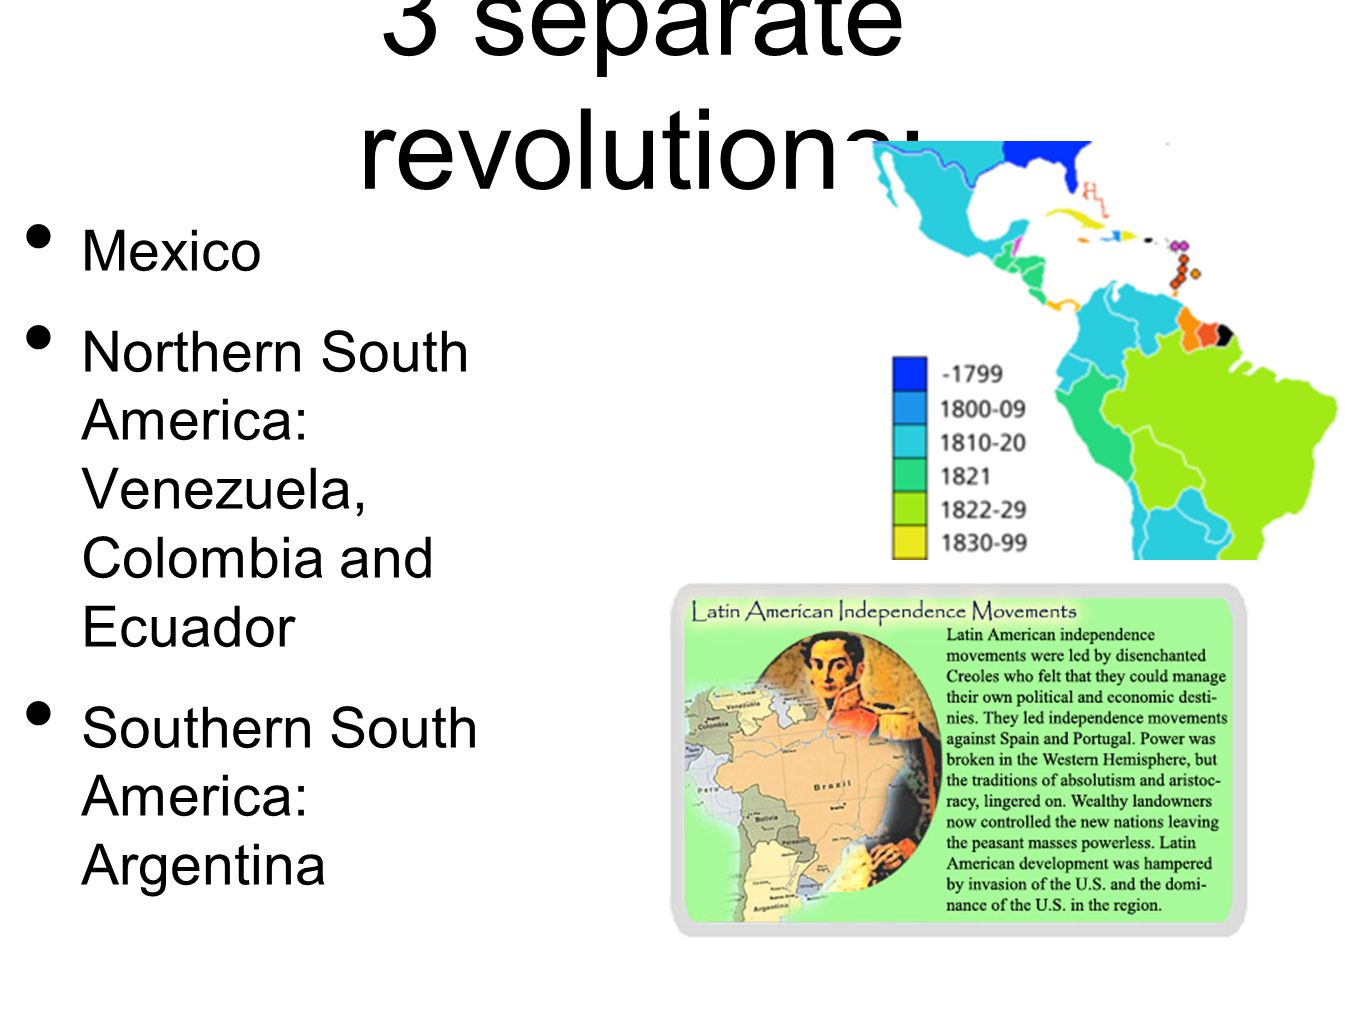 3 separate revolutions: Mexico Northern South America: Venezuela, Colombia and Ecuador Southern South America: Argentina